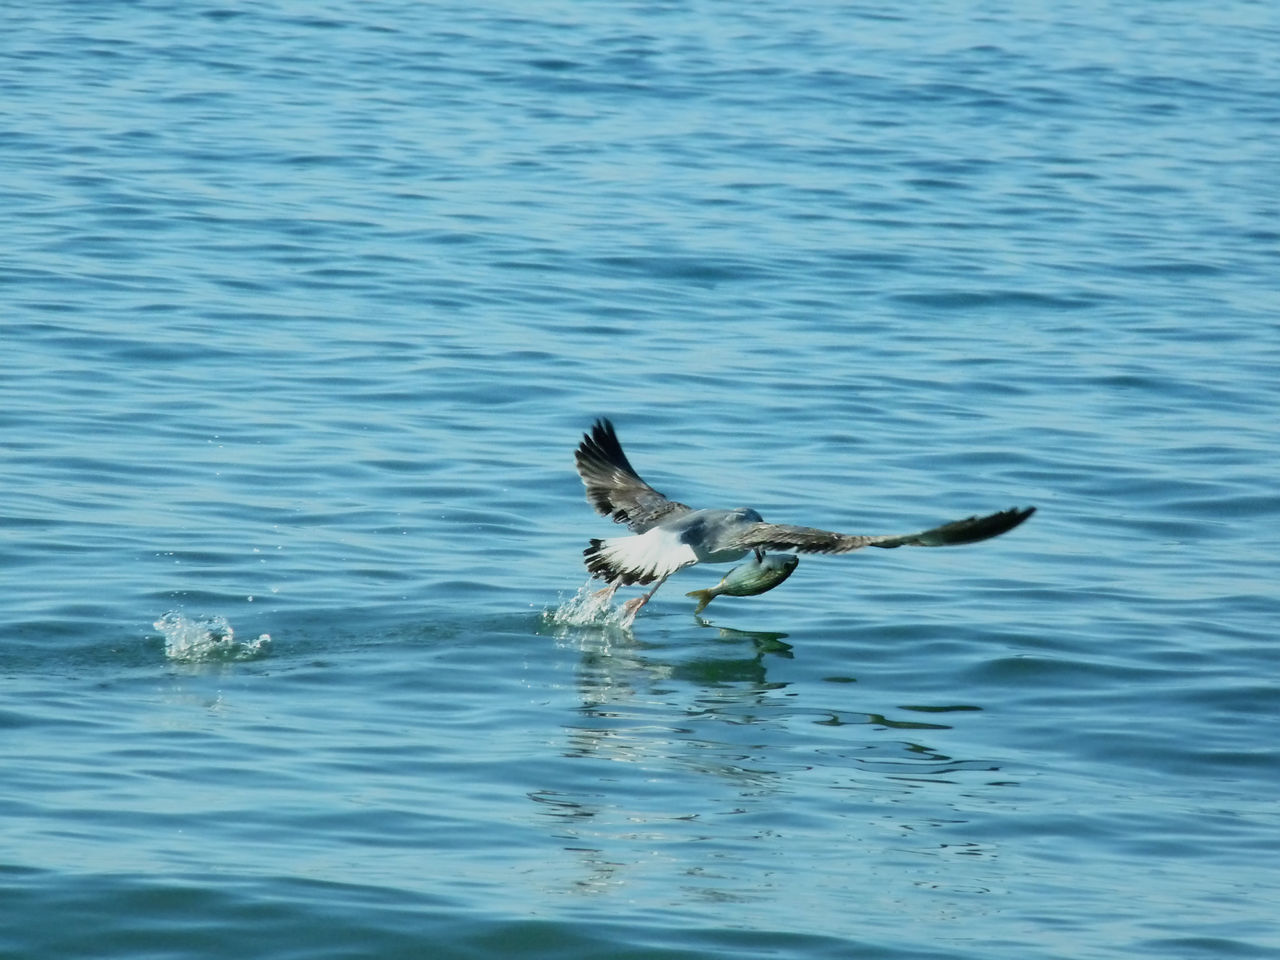 water, animal themes, waterfront, one animal, motion, outdoors, nature, swimming, day, no people, lake, domestic animals, pets, mammal, bird